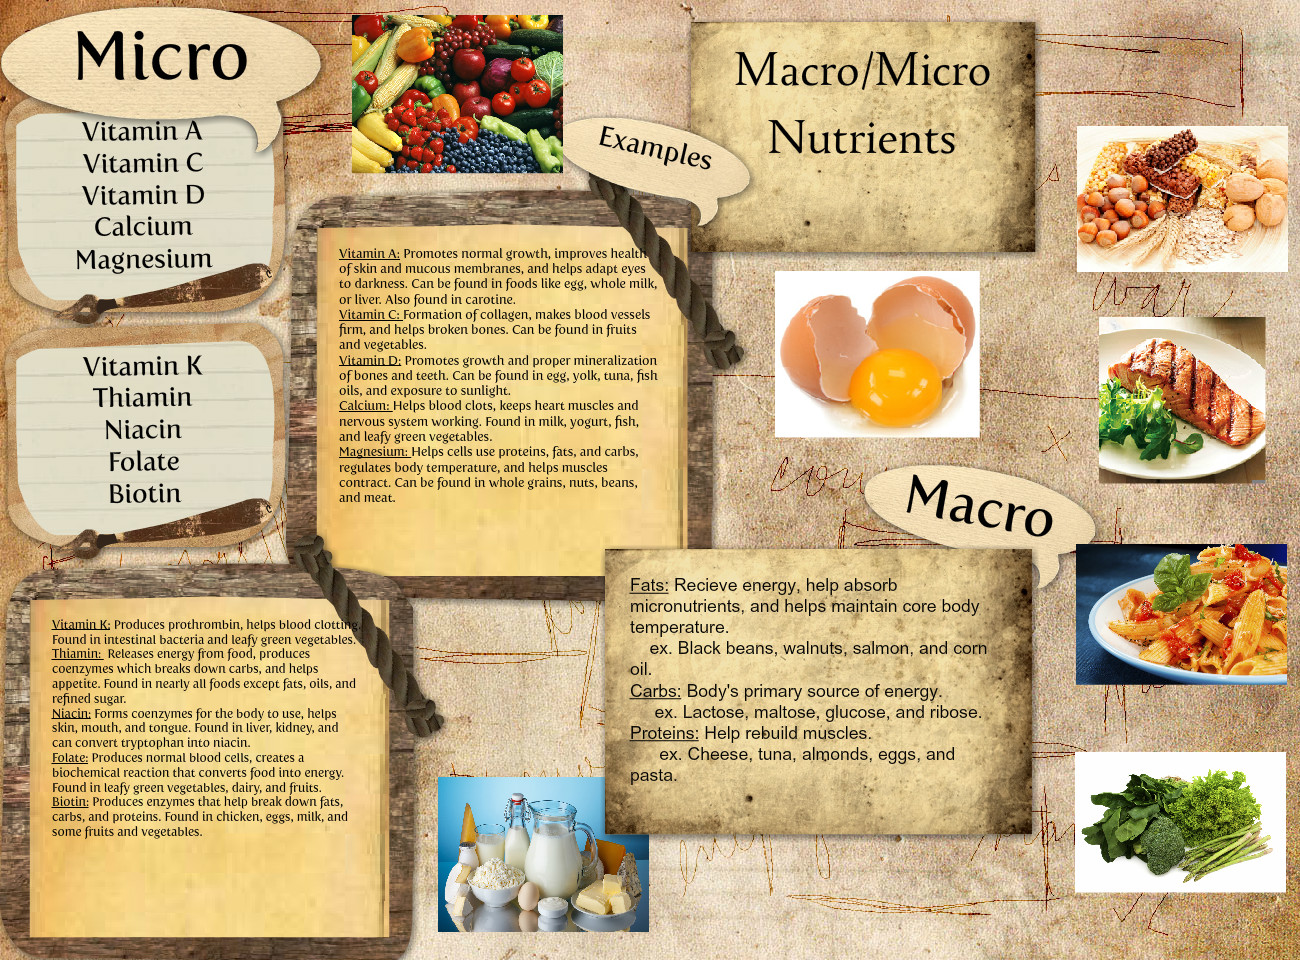 Micro Macro Nutrients Biotin Calcium En Fat Health Health And Fitness Macro Magnesium Micro Nutrients Glogster Edu Interactive Multimedia Posters